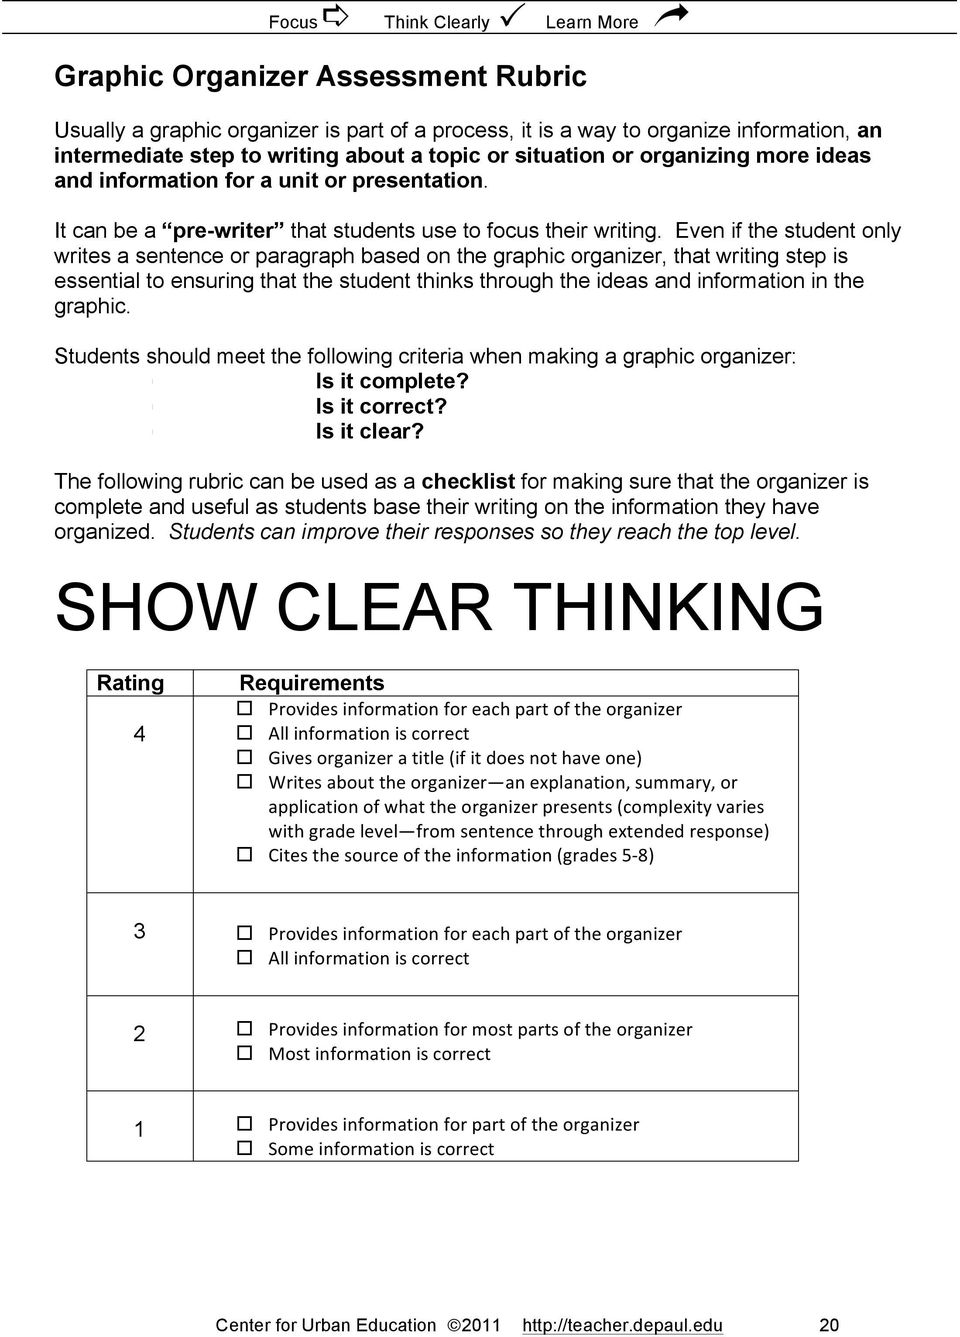 Even if the student only writes a sentence or paragraph based on the graphic organizer, that writing step is essential to ensuring that the student thinks through the ideas and information in the